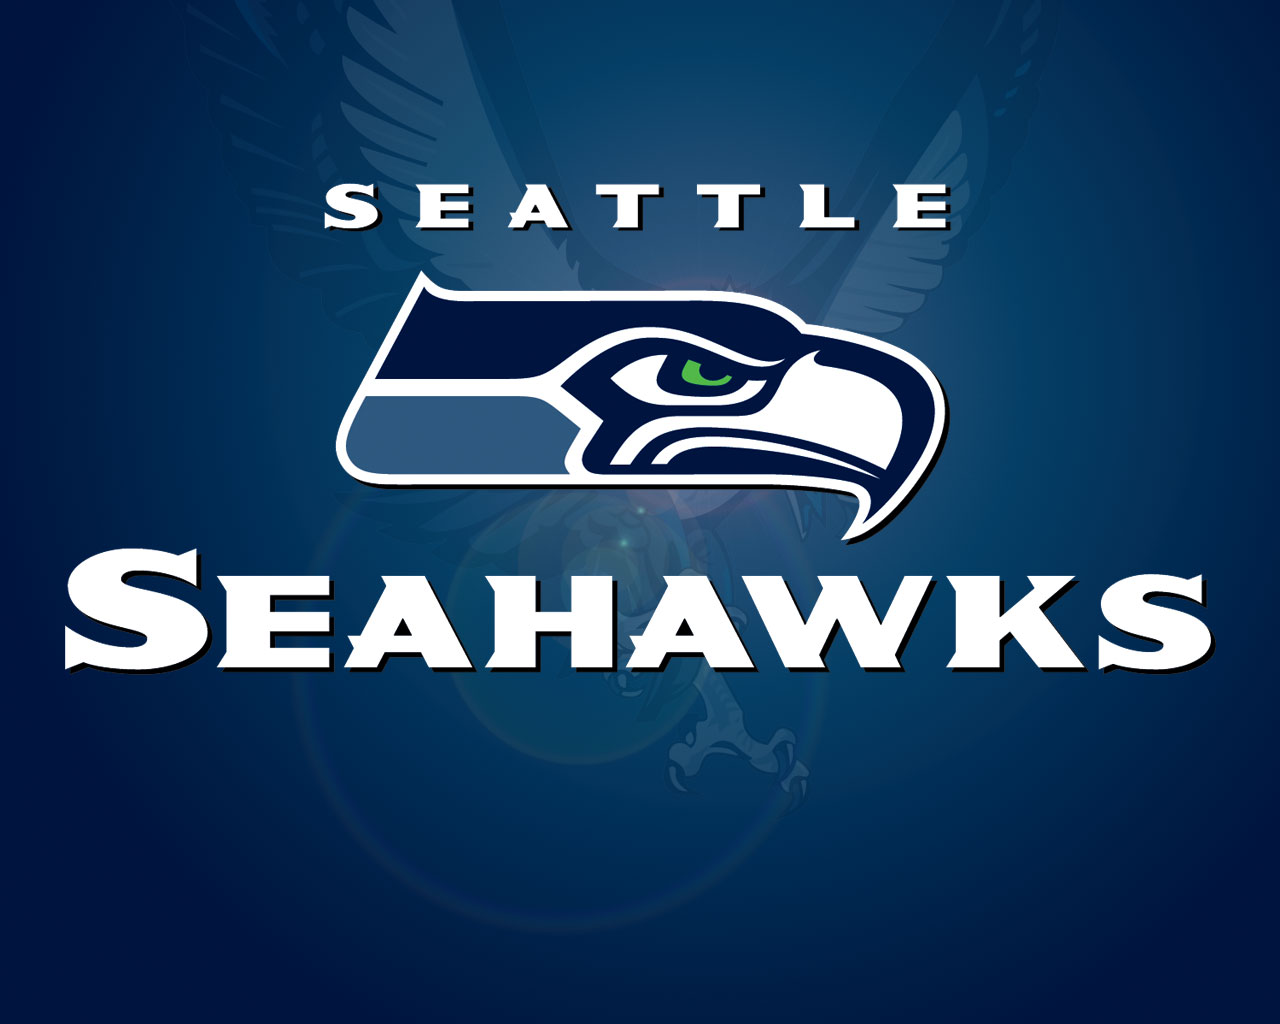 Seattle Seahawks  12 4  Nfc Champions